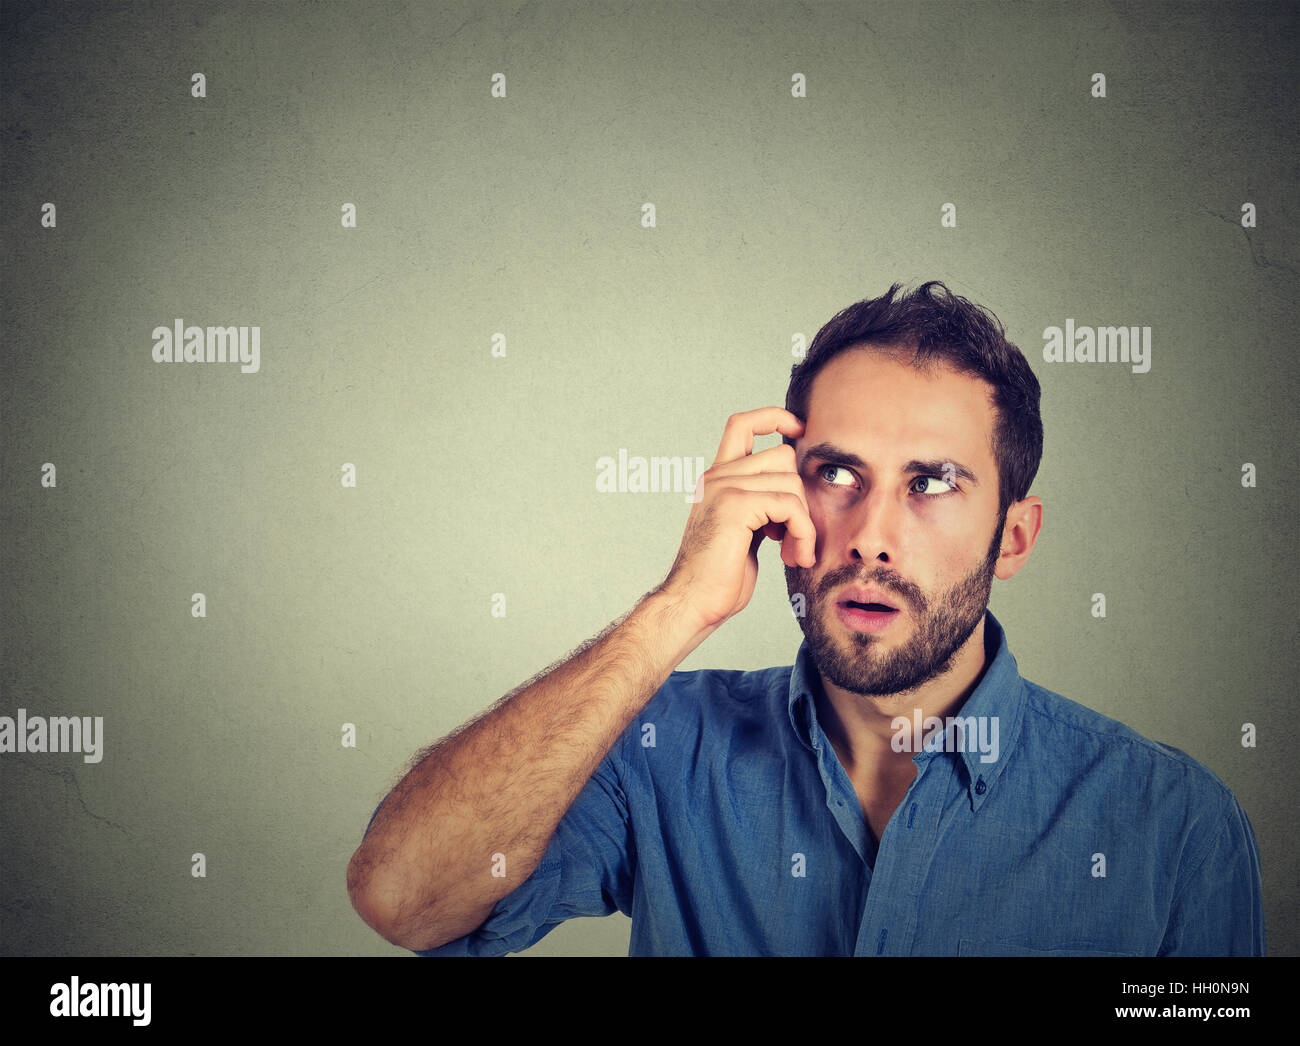 Closeup portrait young man scratching head, thinking deeply about something, looking up, isolated on grey wall background. - Stock Image